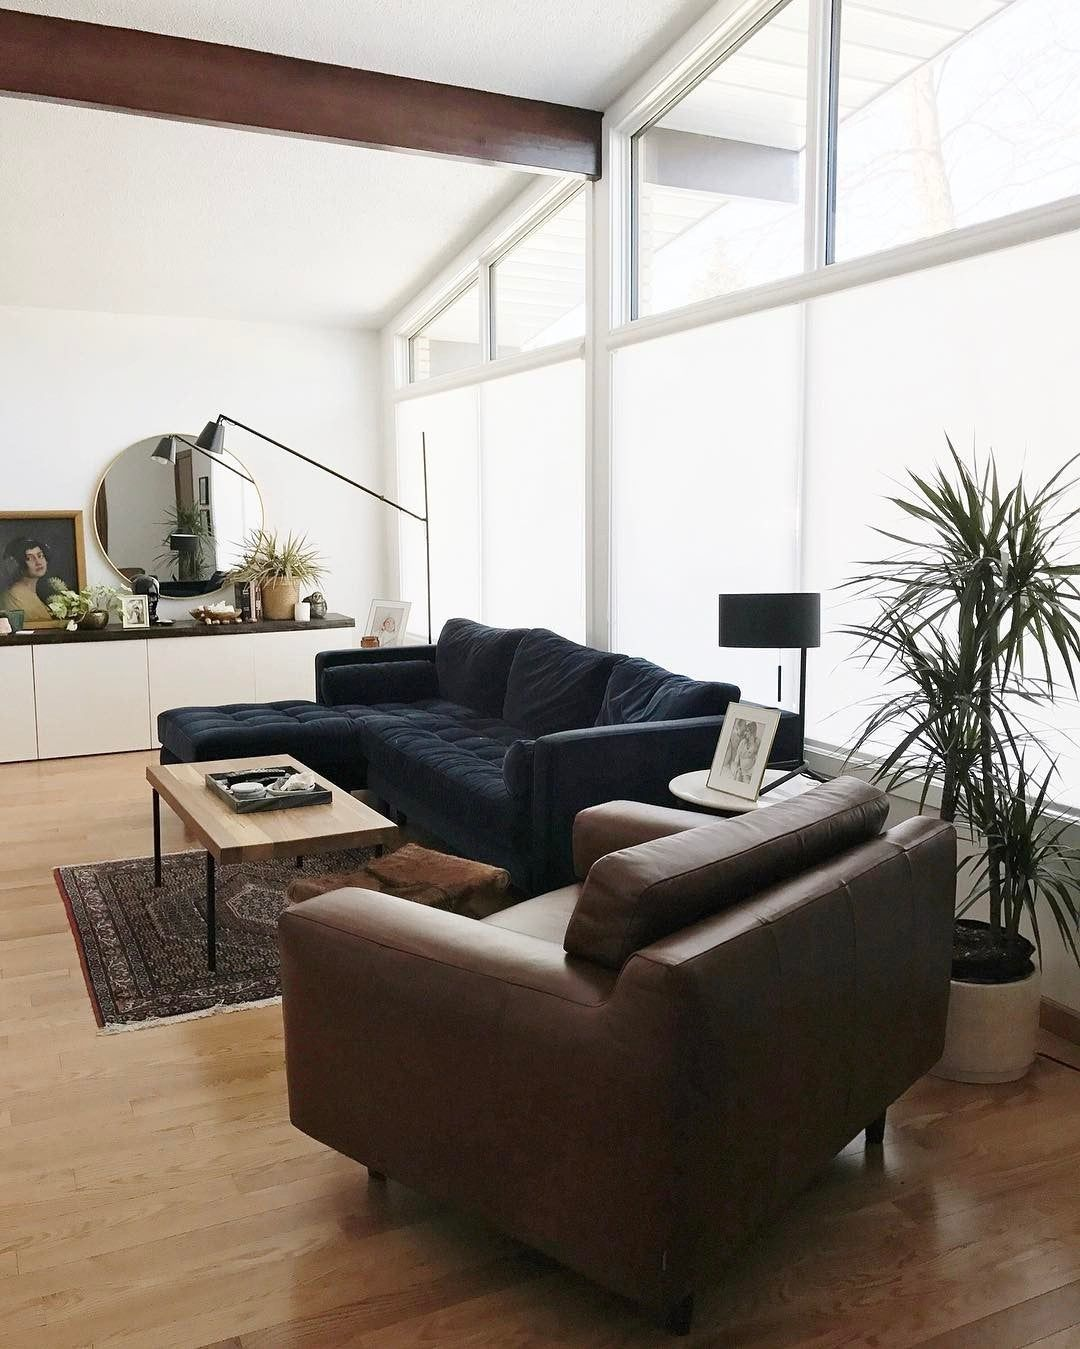 Pin by Nina B on Apt | Family room layout, Furniture ...